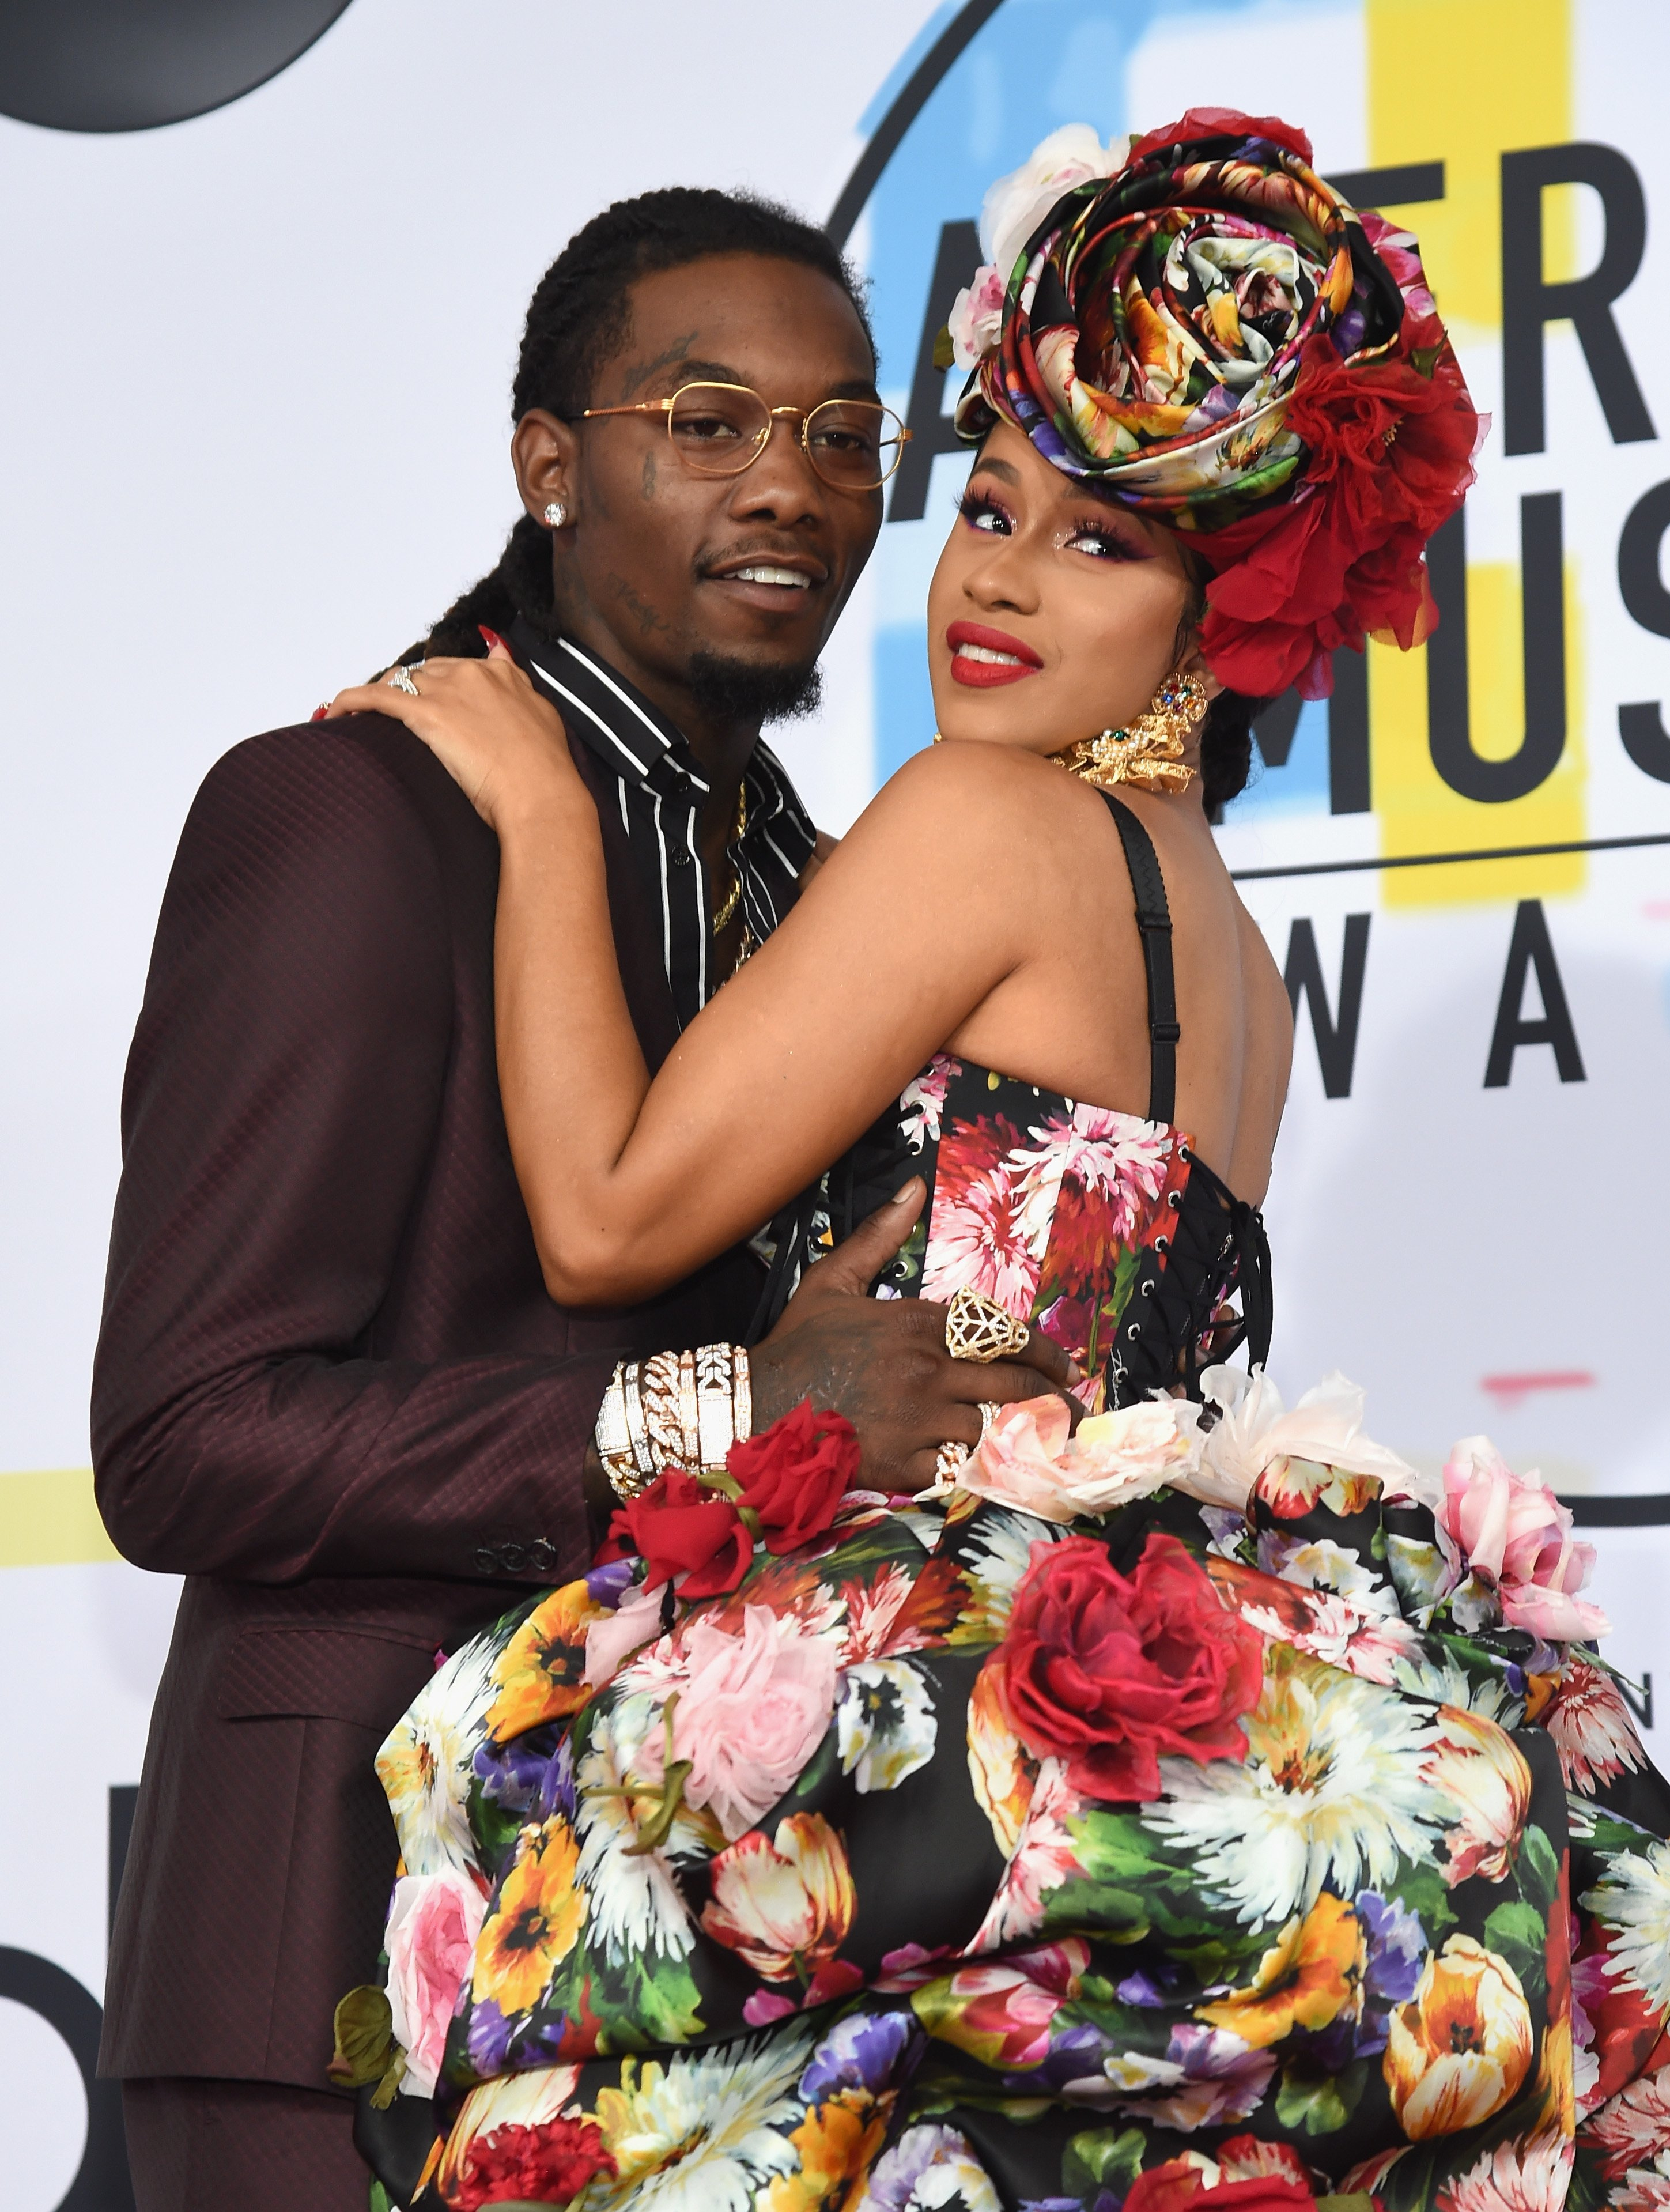 Offset and Cardi B pose at the 2018 American Music Awards at Microsoft Theater on October 9, 2018 in Los Angeles, California. | Source: Getty Images